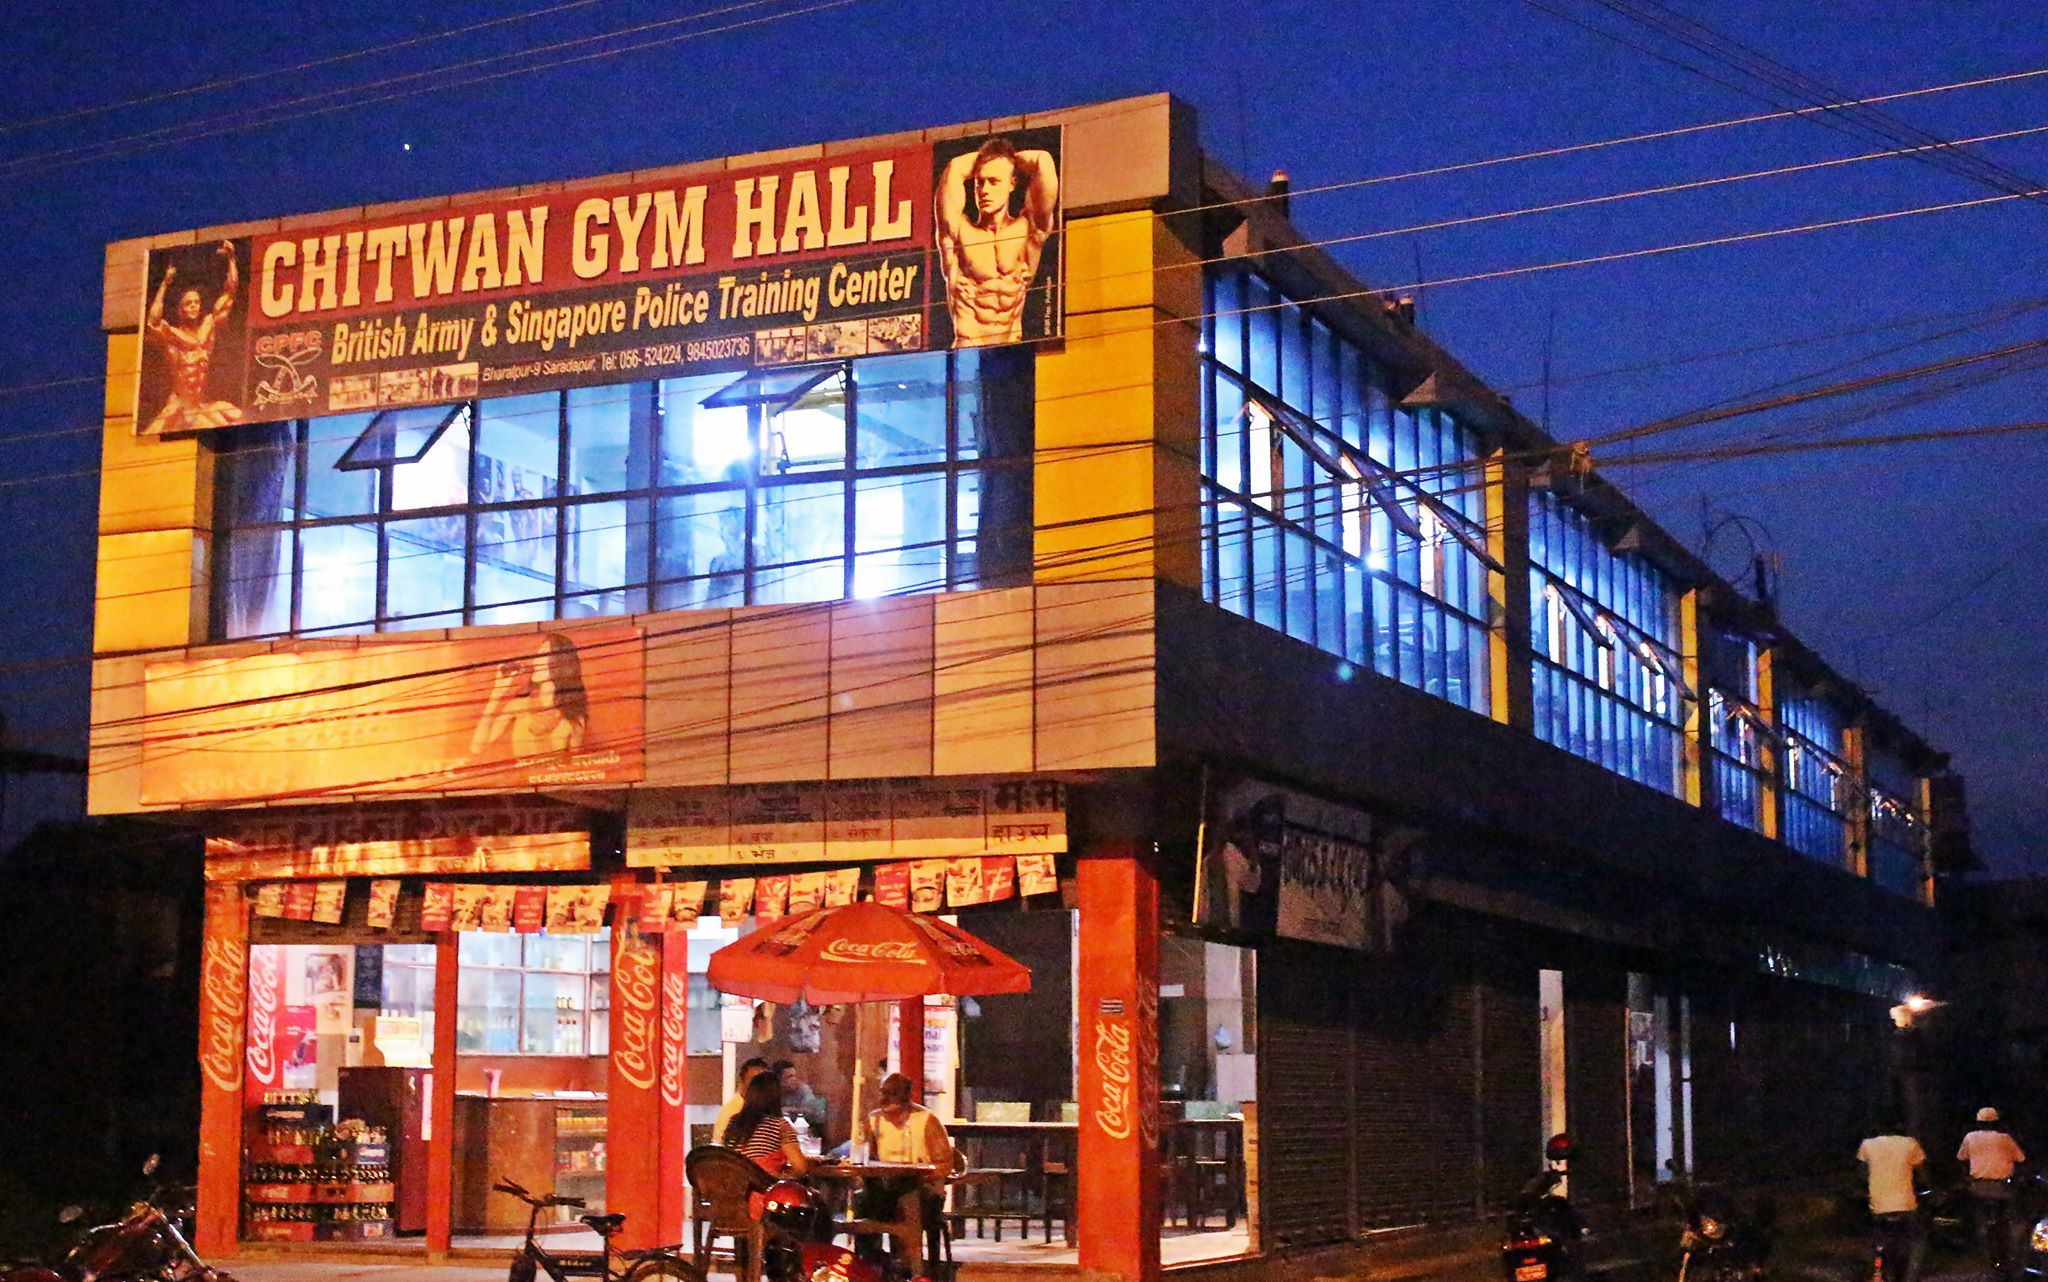 Chitwan Physical Fitness Center/Chitwan Gym